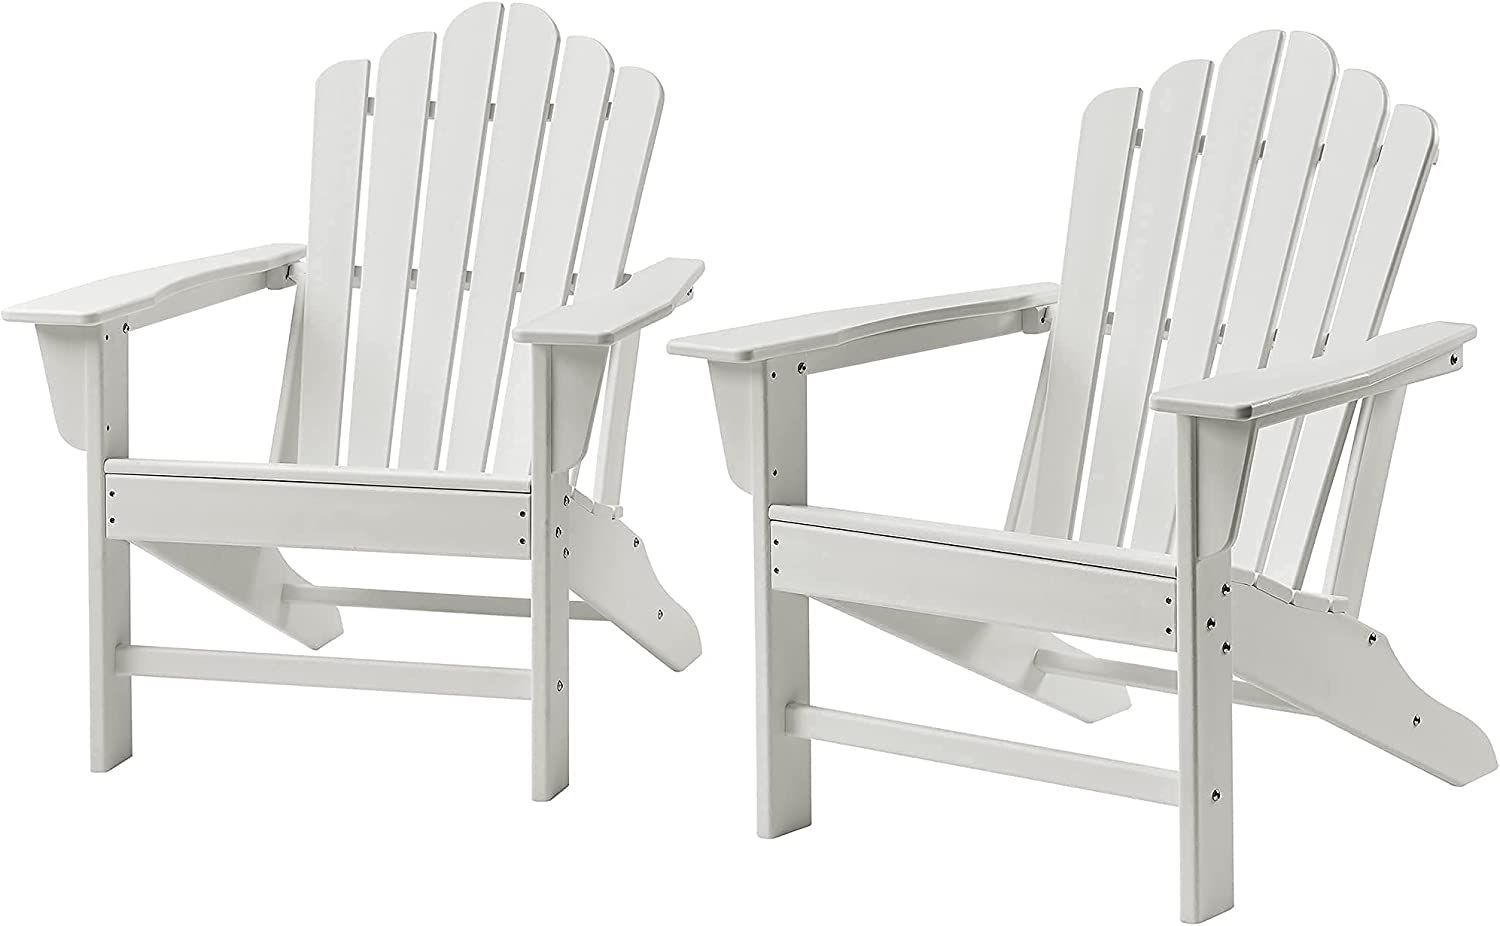 Ehomexpert Classic Outdoor Adirondack Chair Set of 2 for Garden Porch Patio Deck Backyard, Weather Resistant Accent Furniture, White